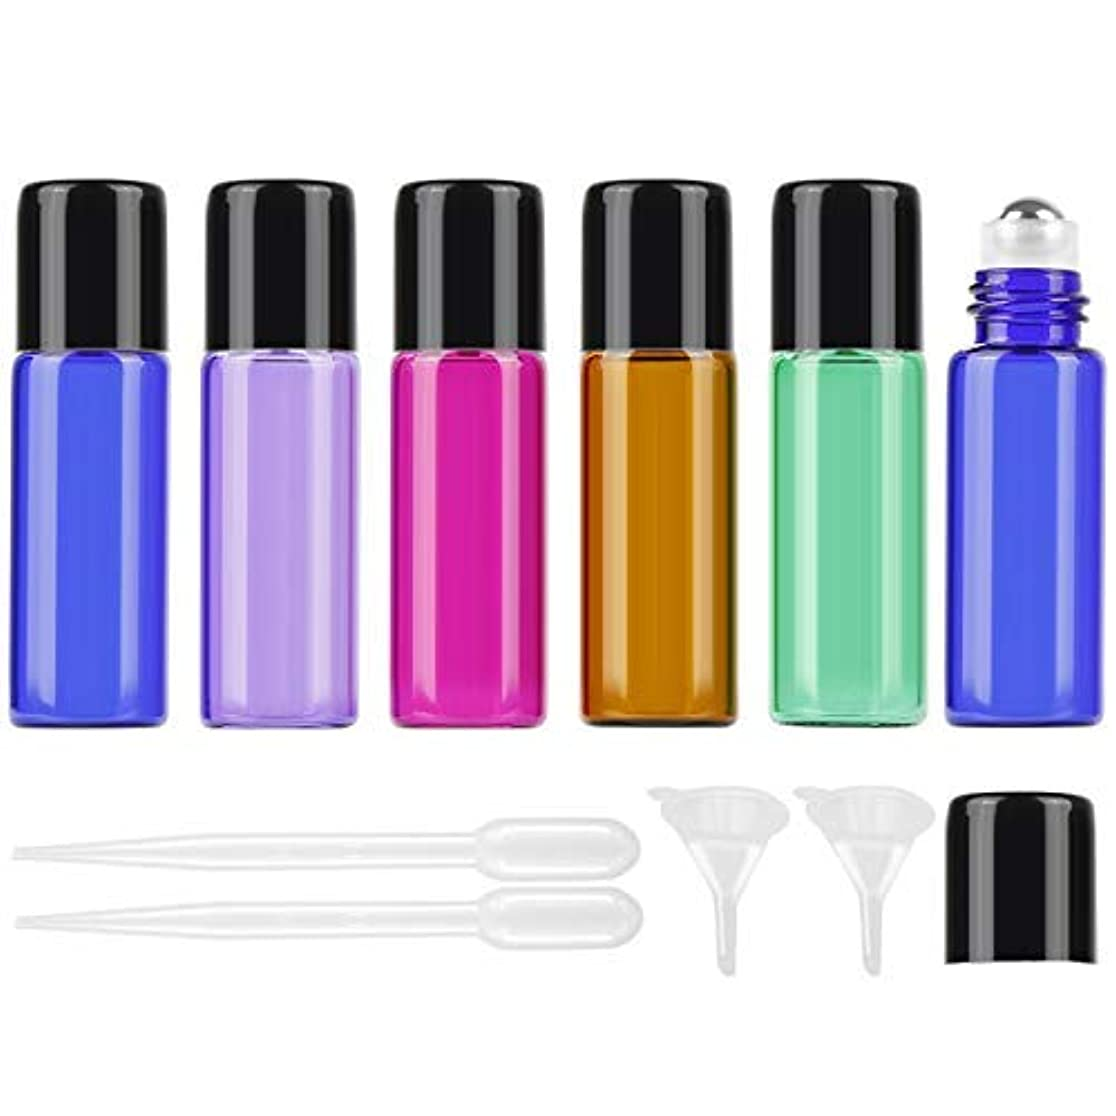 プレゼンテーションヒギンズ若さ25Pcs 5ml Colored Essential Oil Roller Bottles Vials Glass Cosmetic Travel Containers with Stainless Steel Roller...